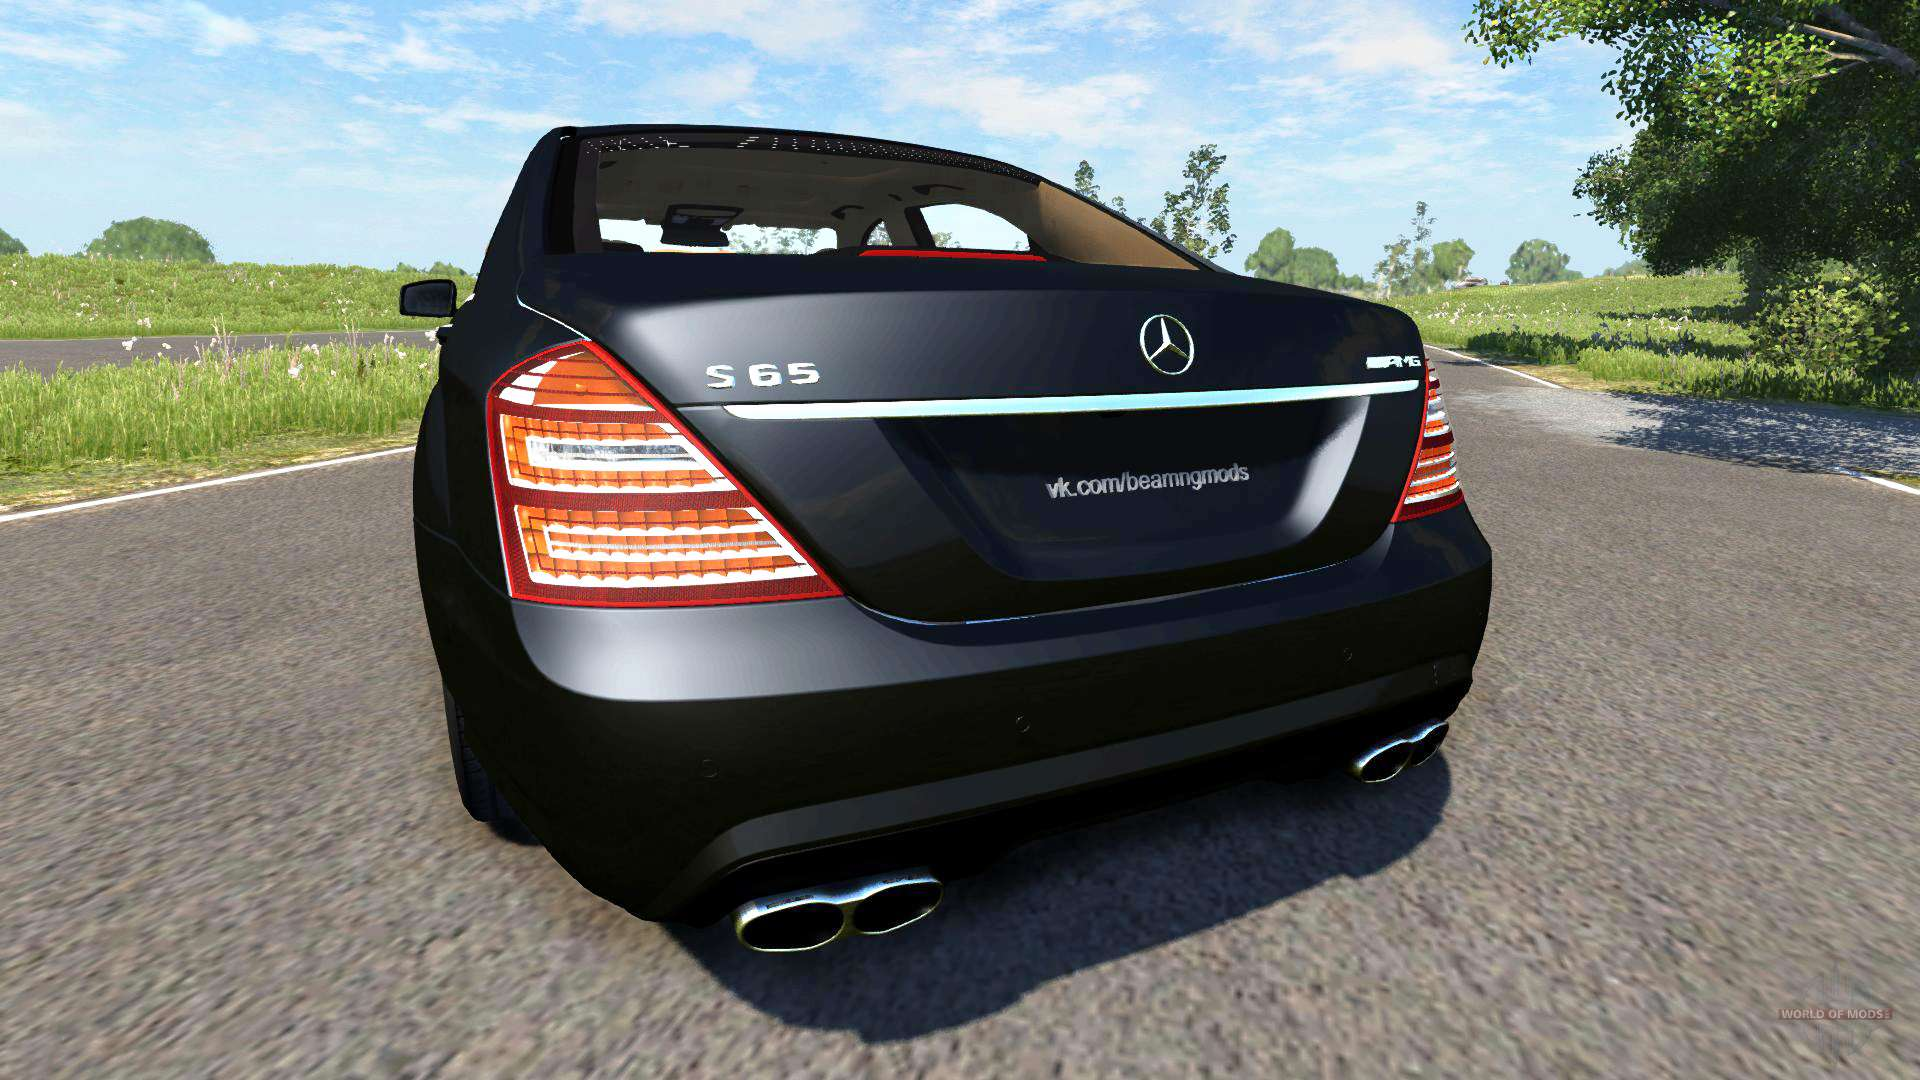 Mercedes benz s65 amg 2012 pour beamng drive for Mercedes benz amg s65